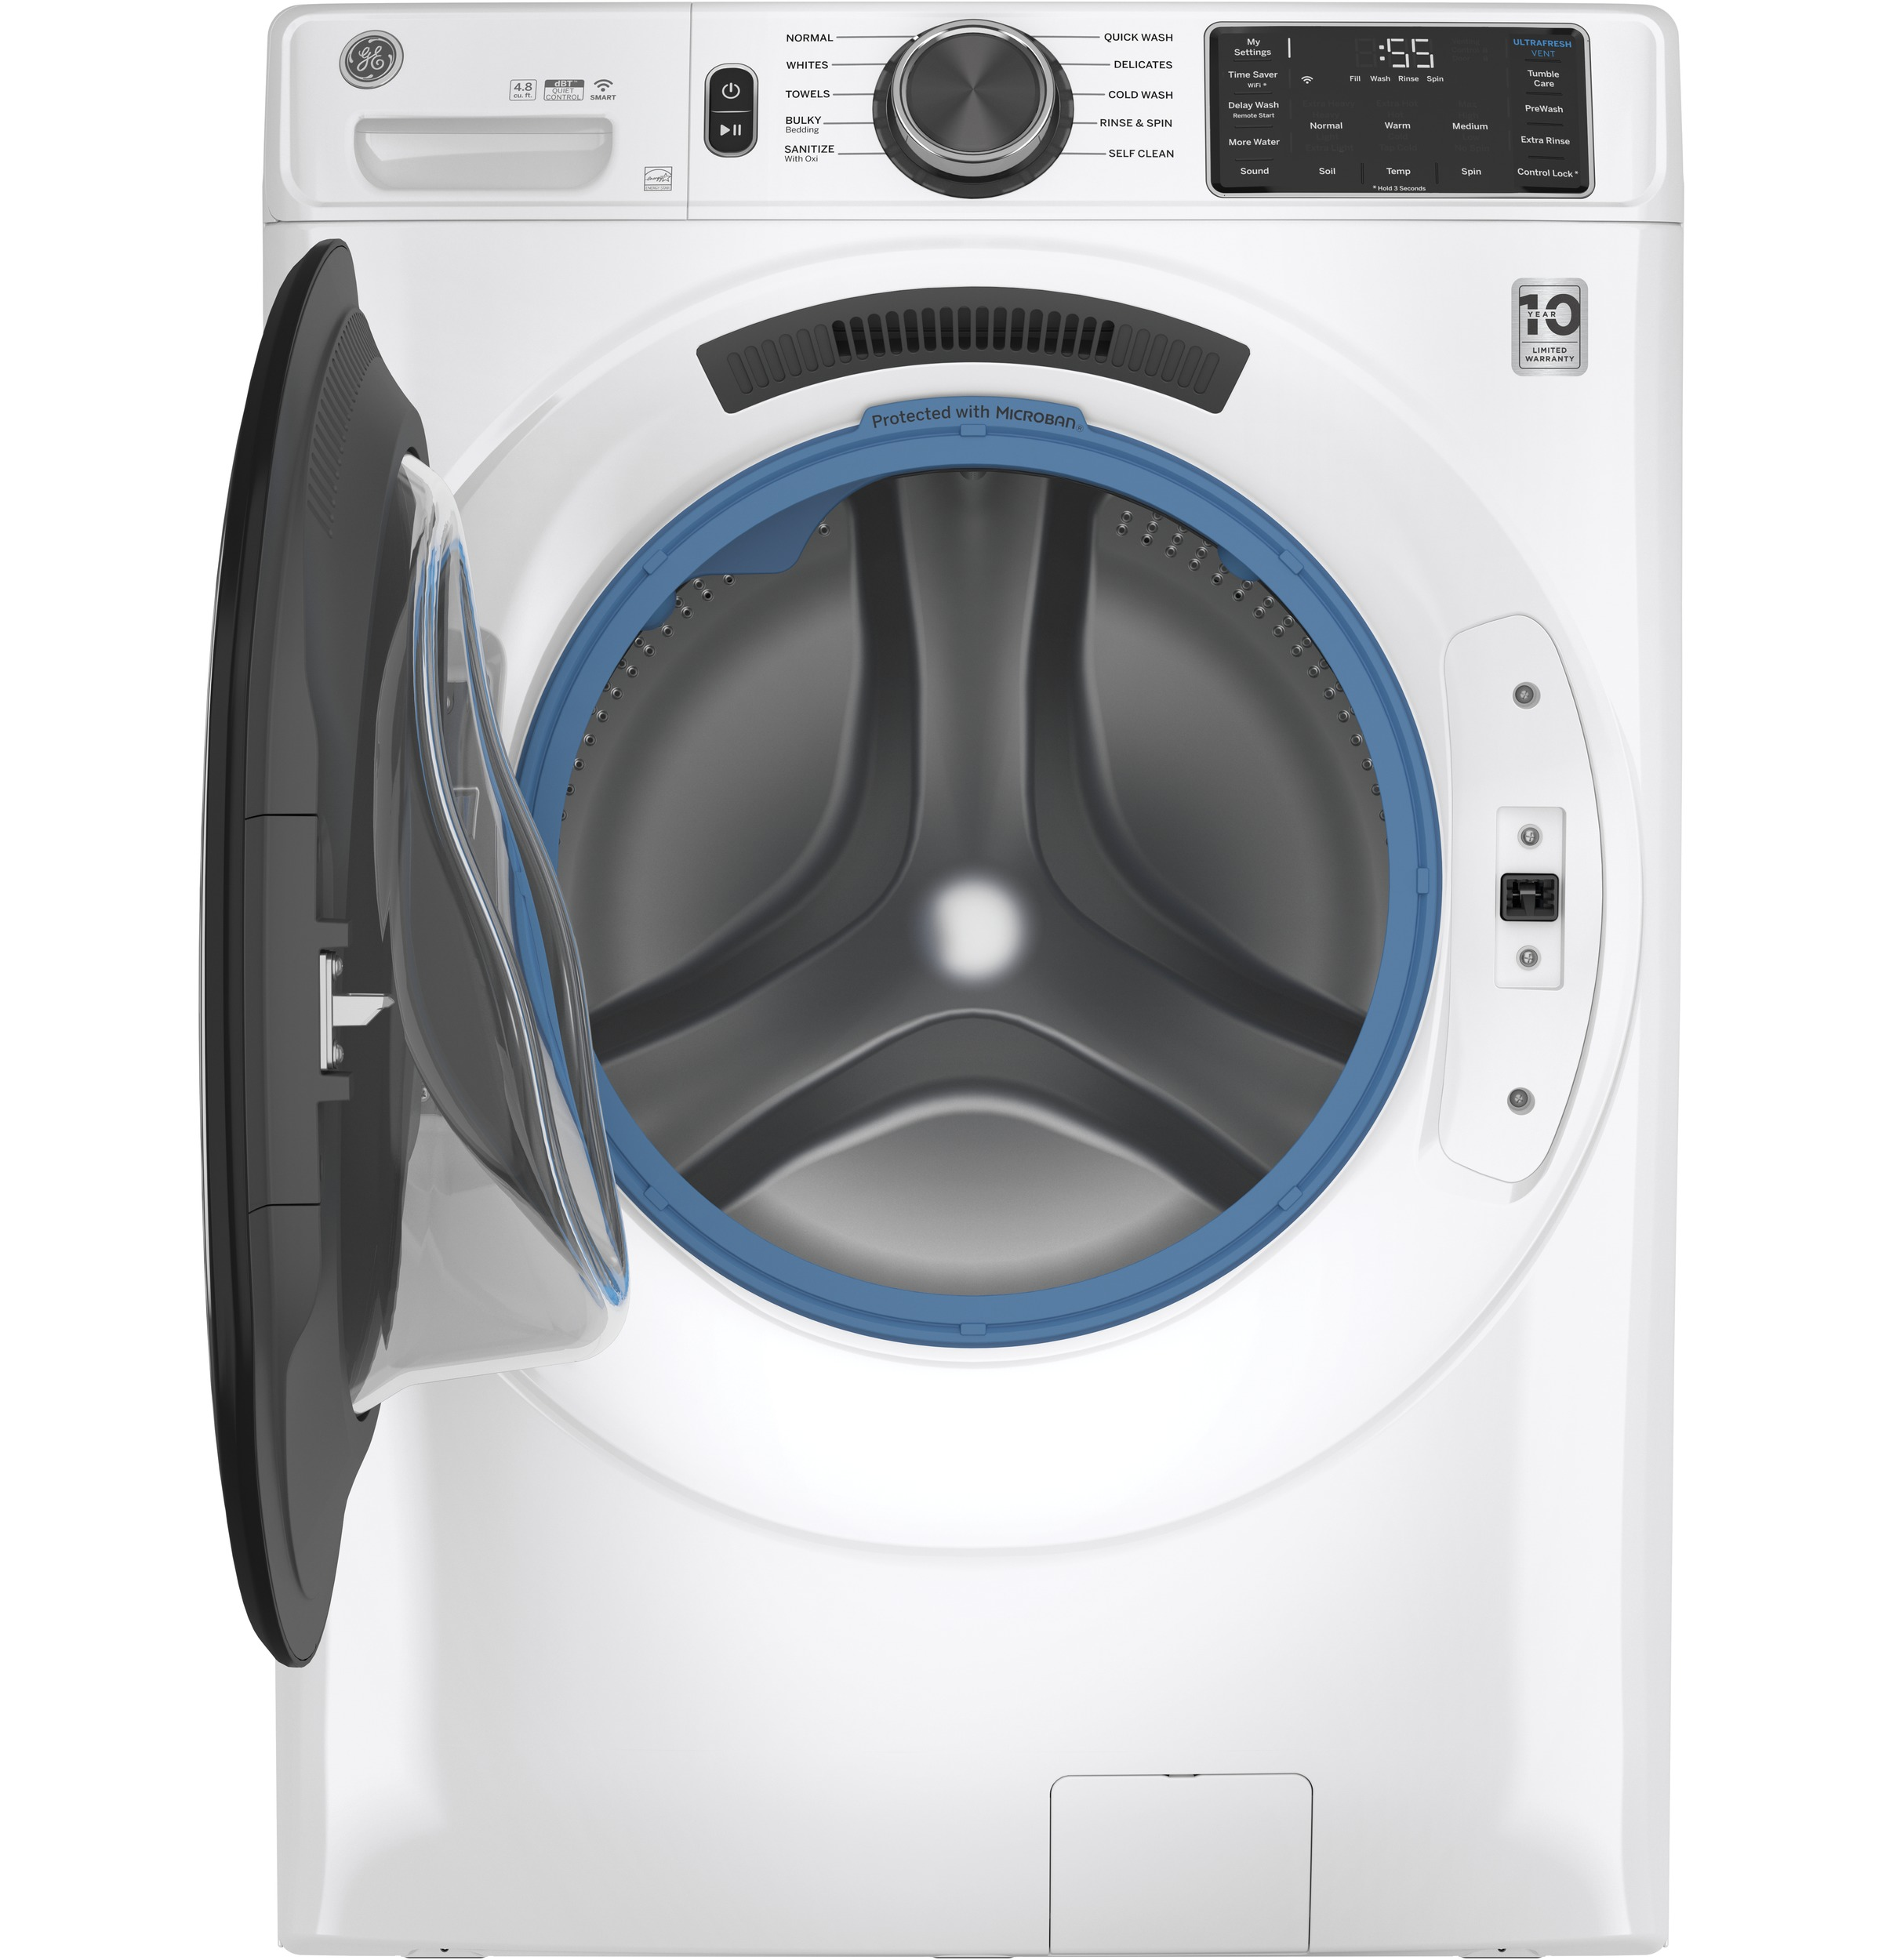 Model: GFW550SSNWW | GE GE® 4.8 cu. ft. Capacity Smart Front Load ENERGY STAR® Washer with UltraFresh Vent System with OdorBlock™ and Sanitize w/Oxi